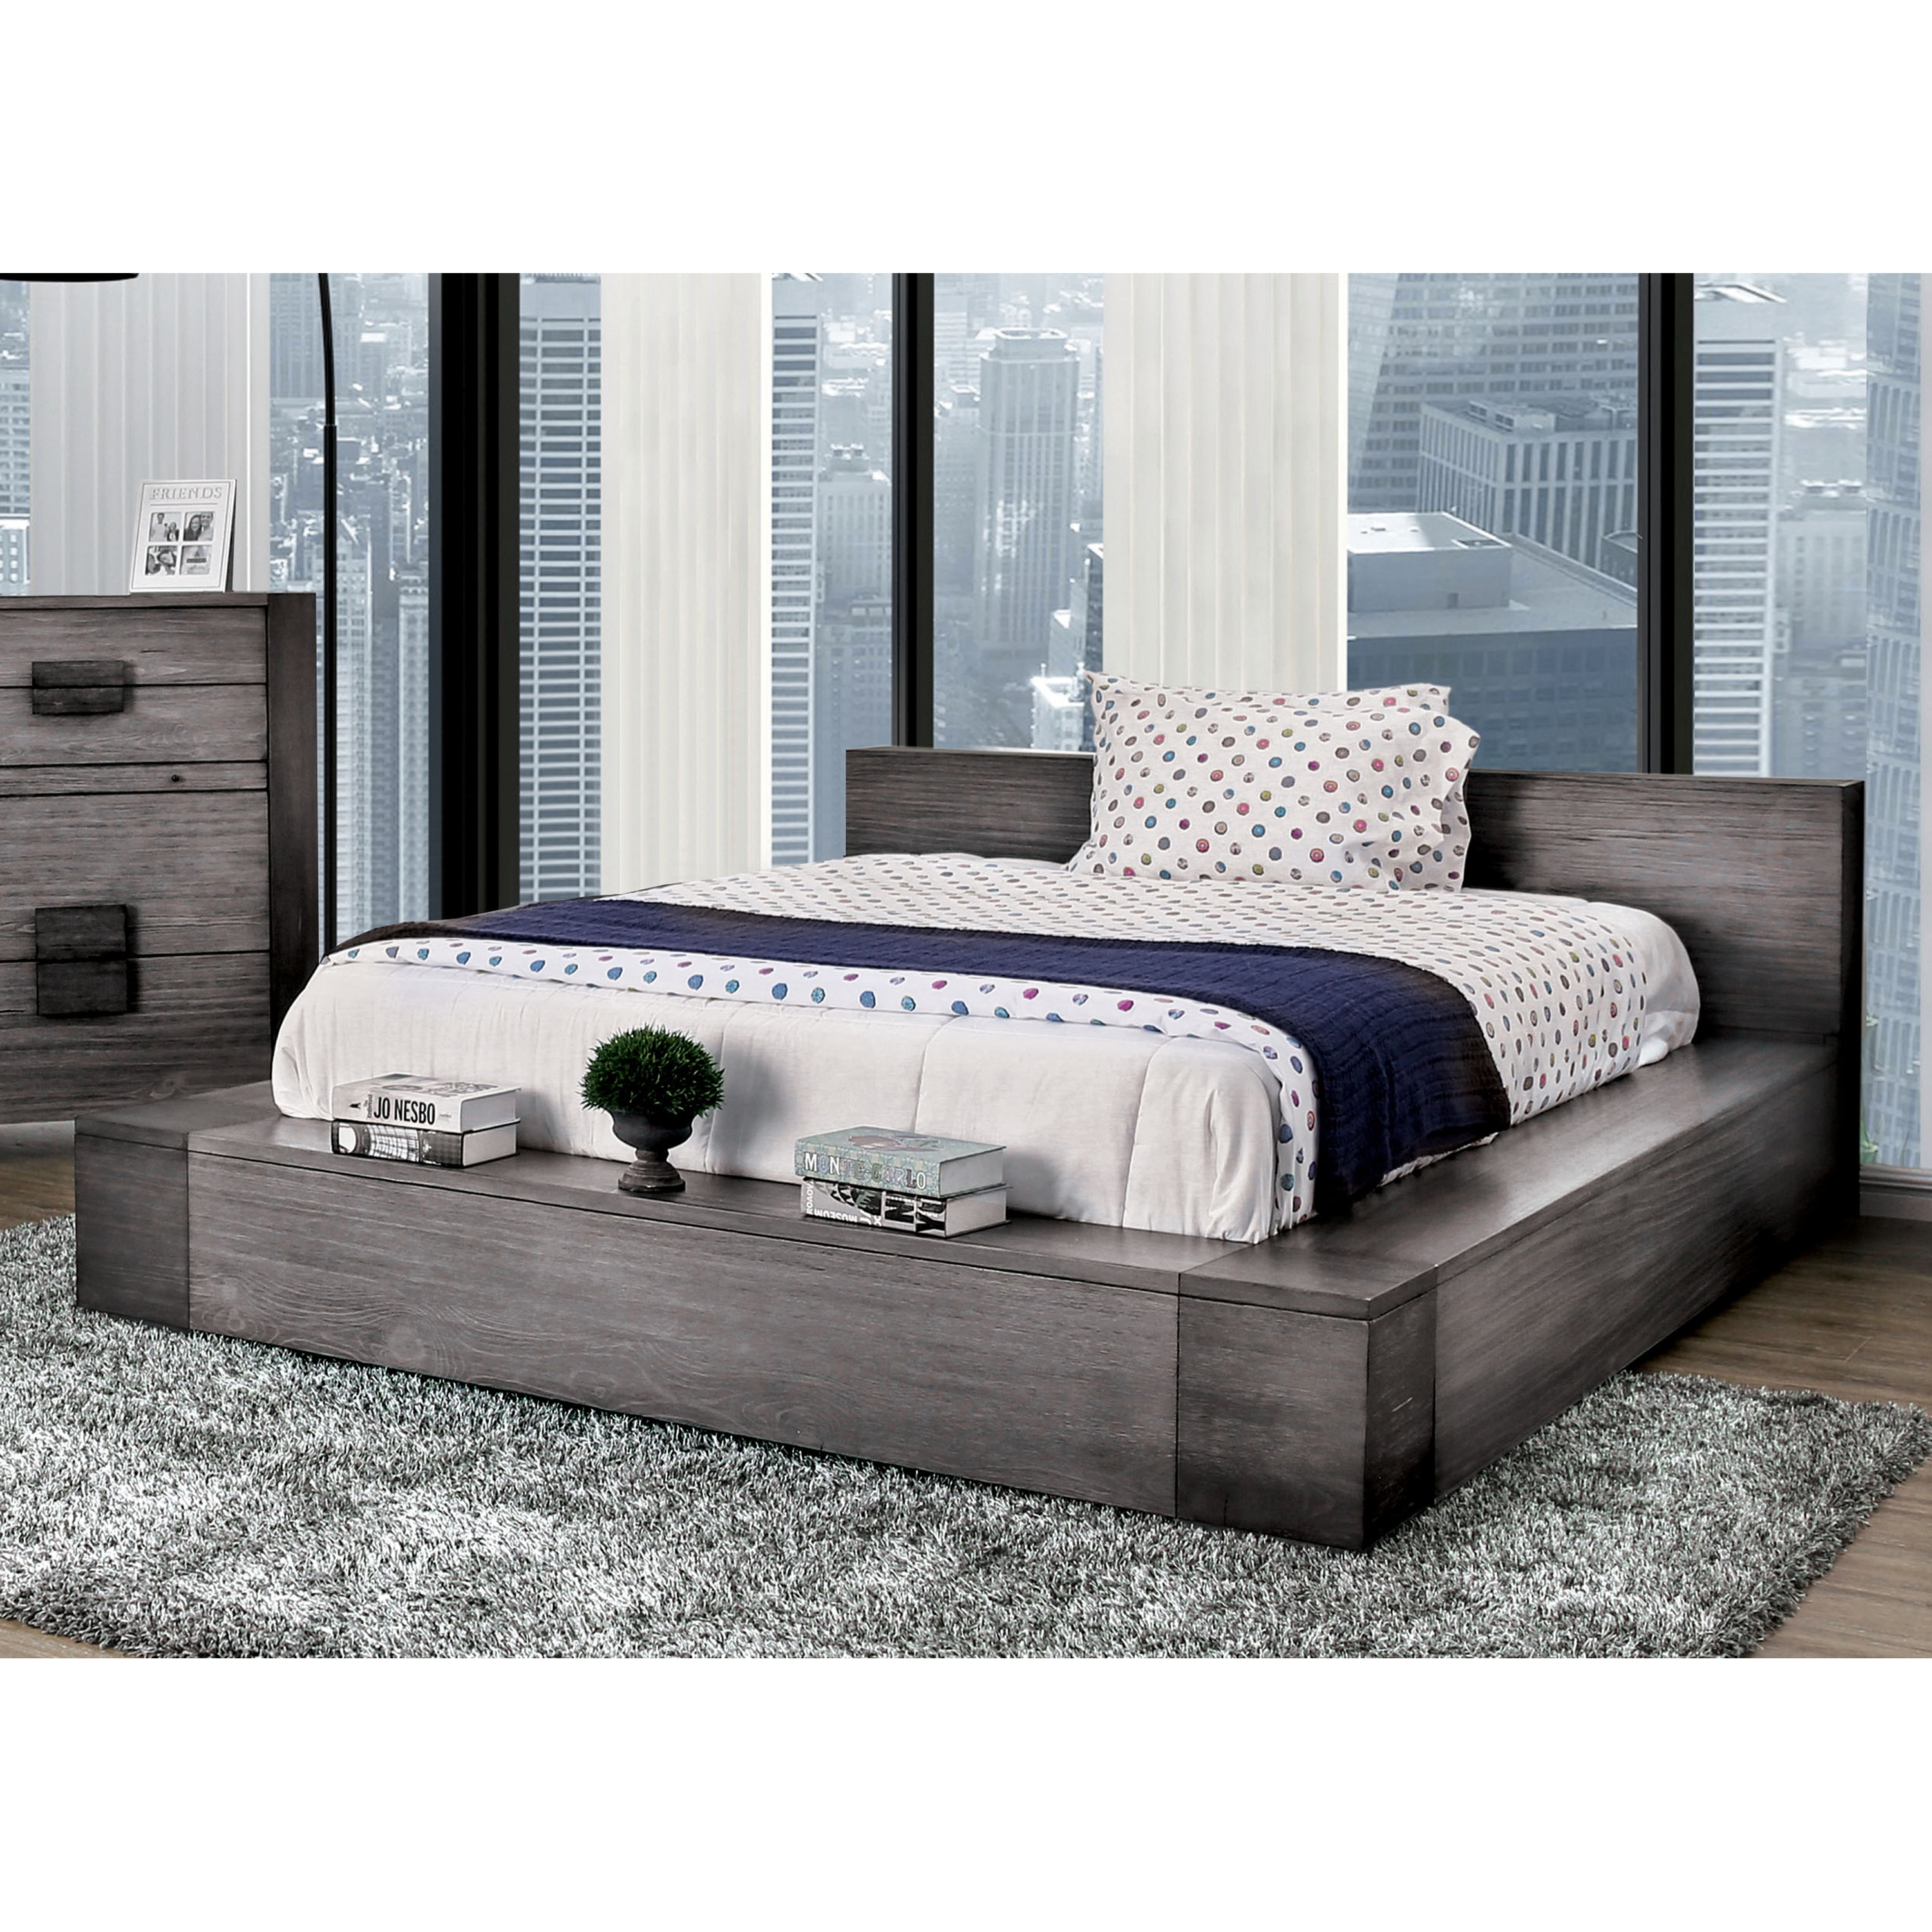 Furniture Of America Fist Contemporary Grey Wood Platform Bed Overstock 26972223 California King